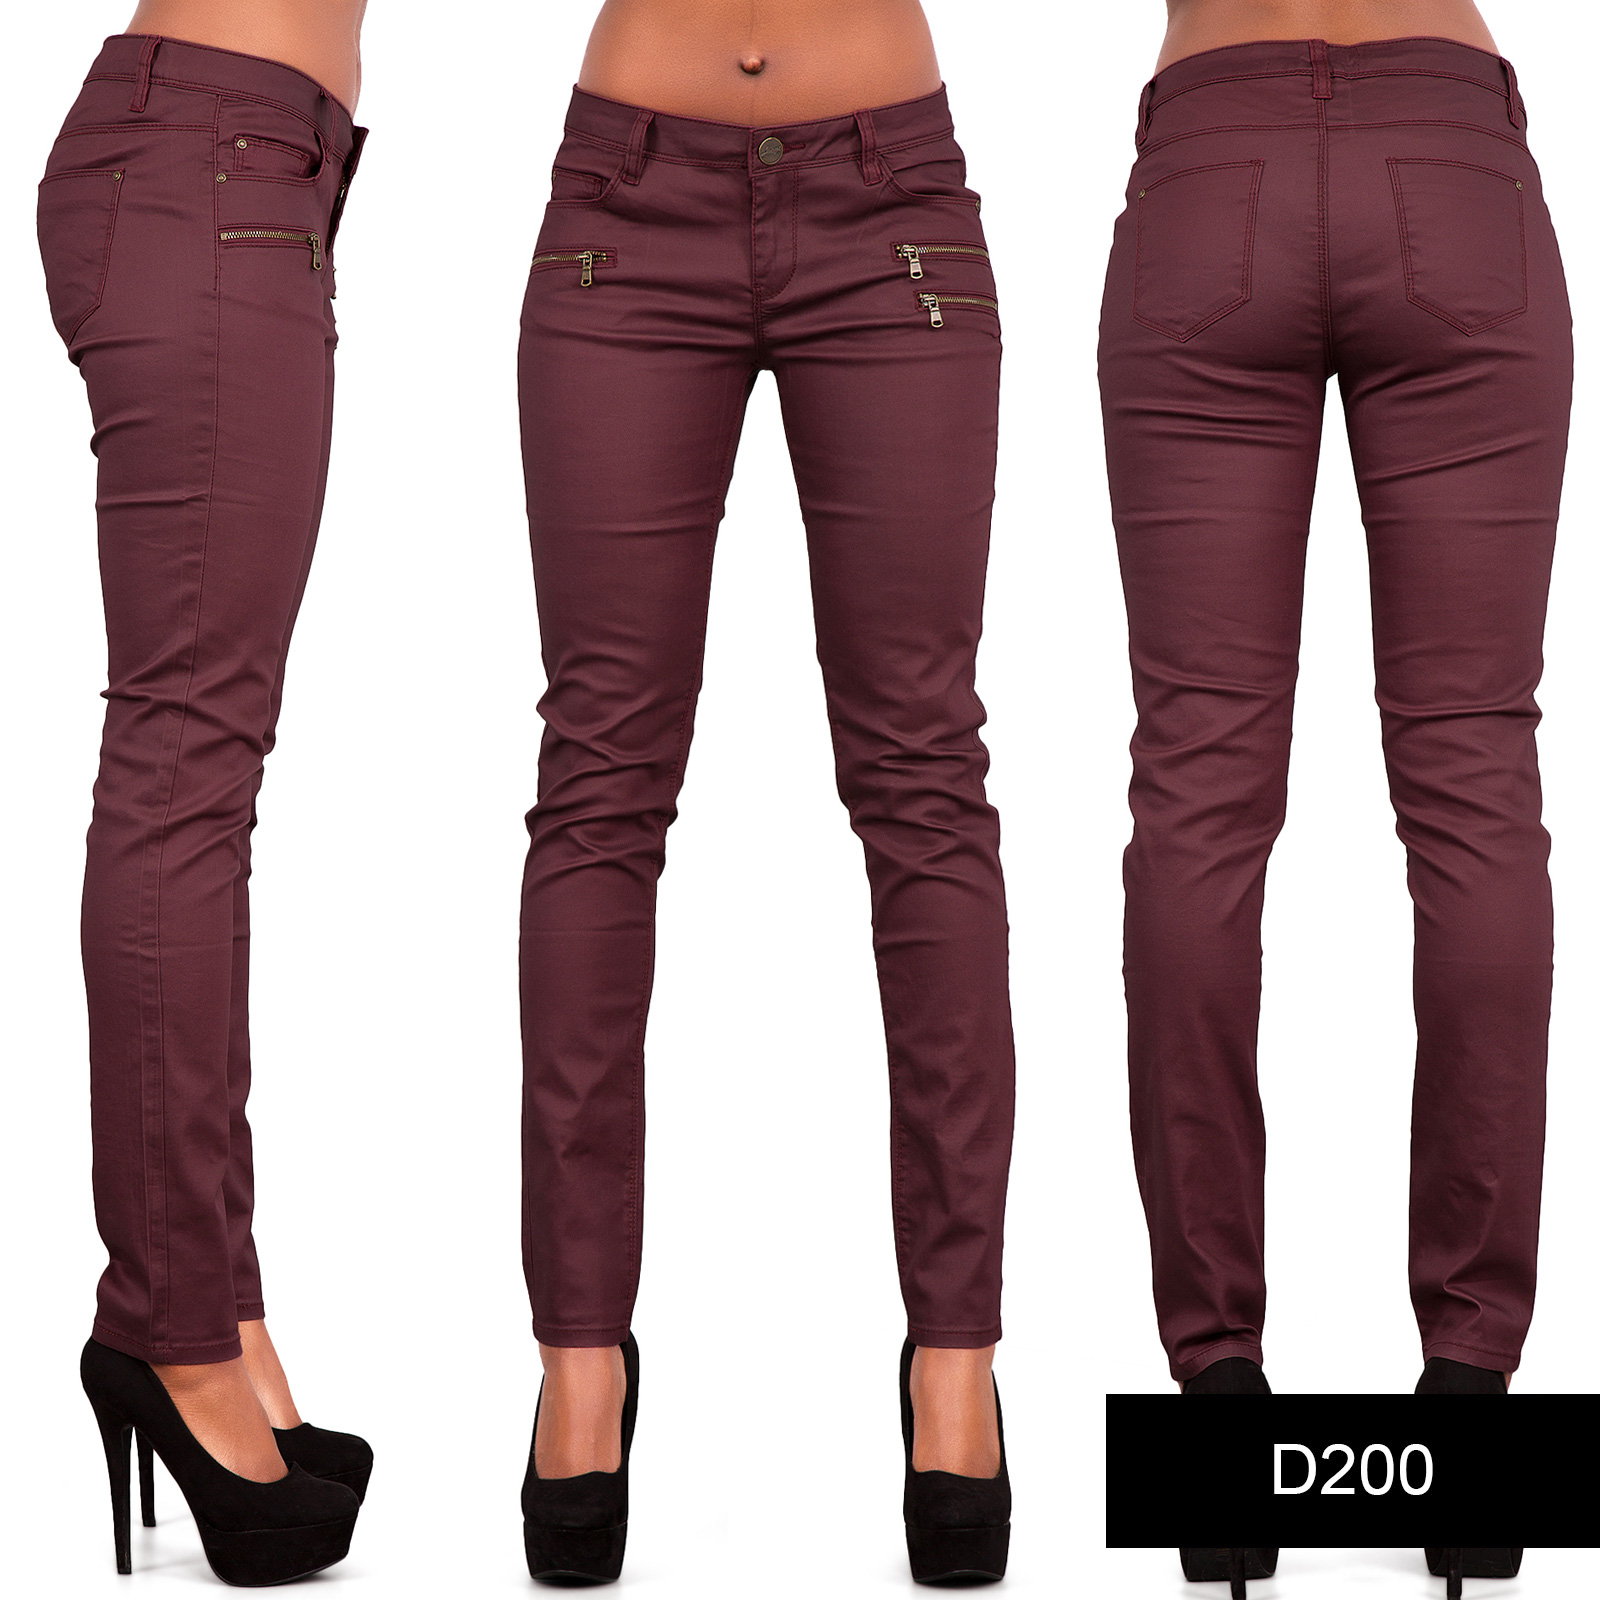 Enjoy free shipping and easy returns every day at Kohl's. Find great deals on Womens Red Jeans at Kohl's today!